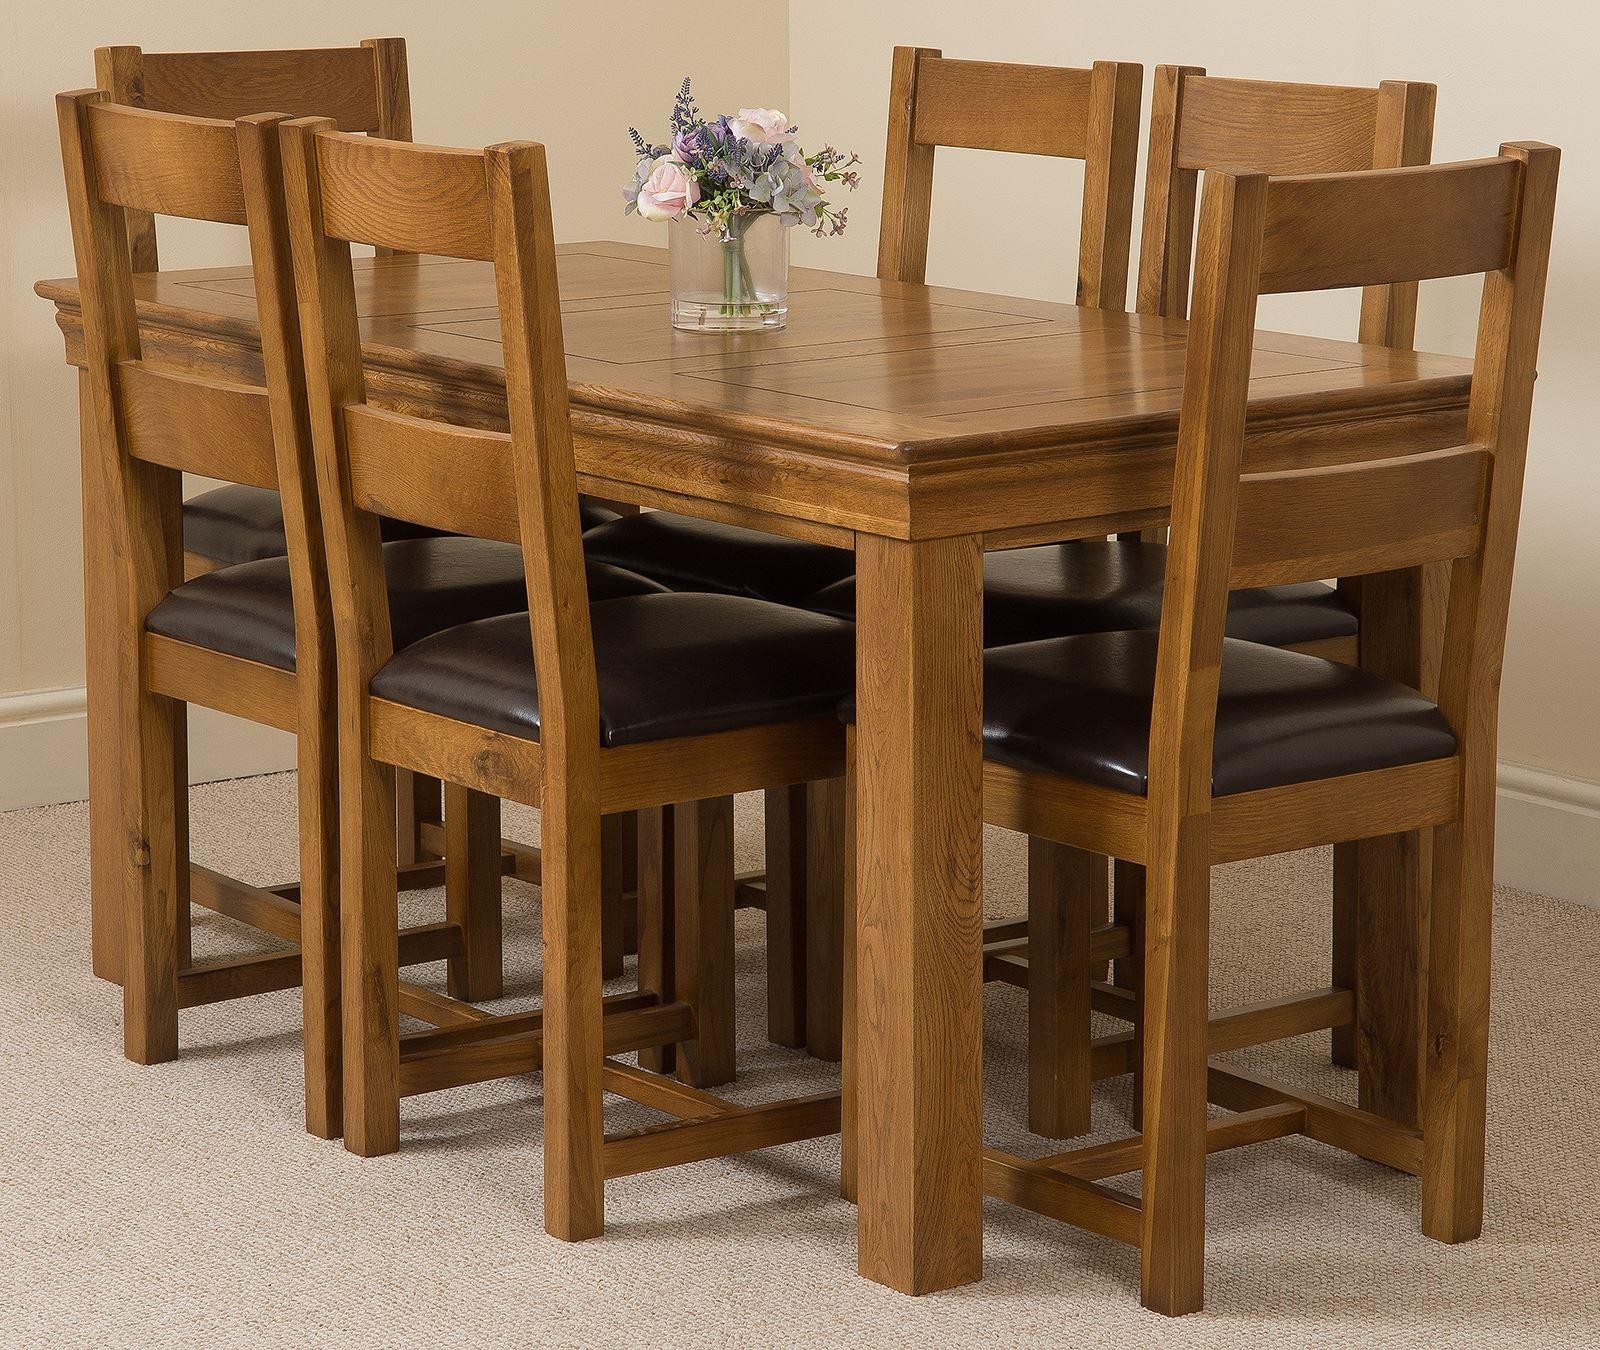 Dining Room Furniture Rustic French Chateau Rustic Oak Dining Table With 6 Brown Lincoln